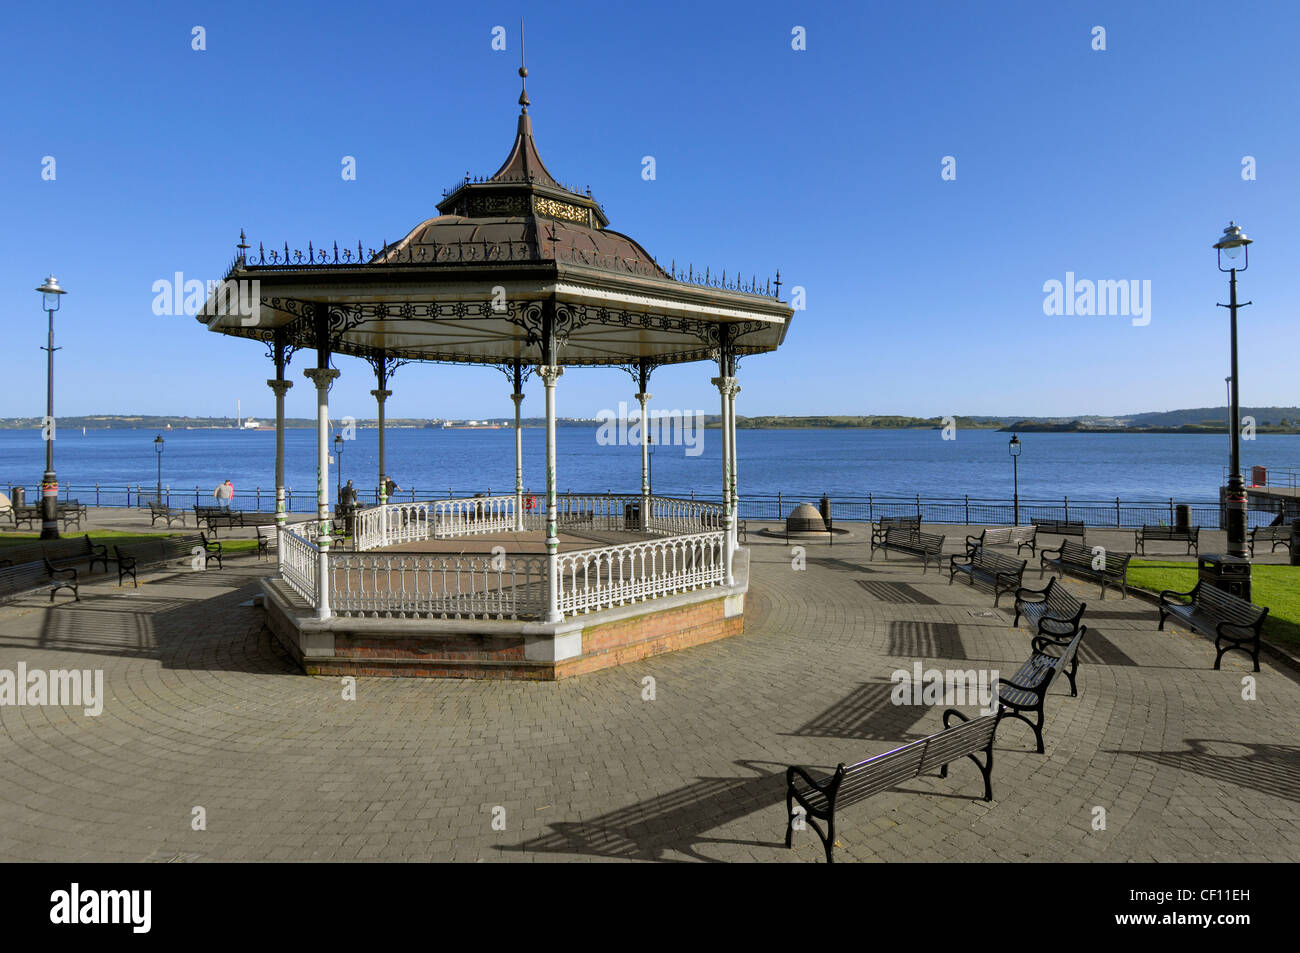 Cobh Bandstand - Stock Image